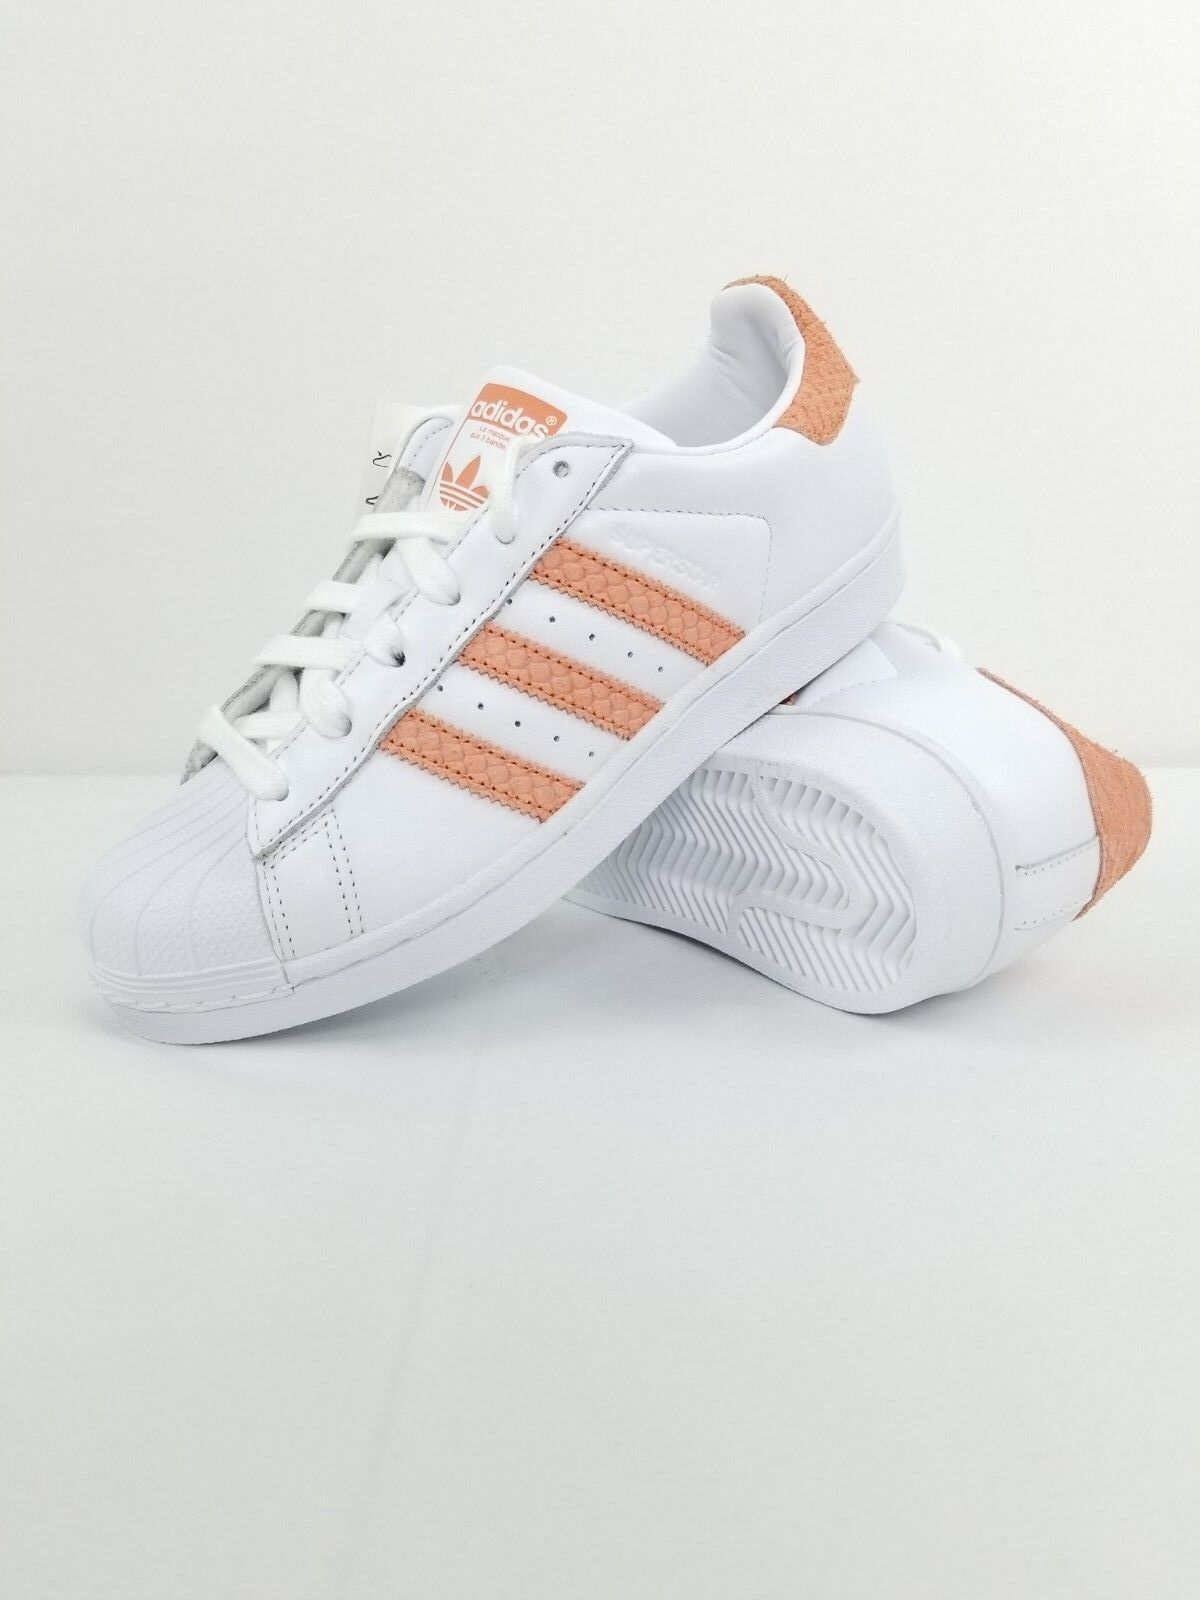 New Adidas Superstar Women's White Chalk Coral CG5462 Size 5.5 5.5 5.5 MSRP  80 f72c89